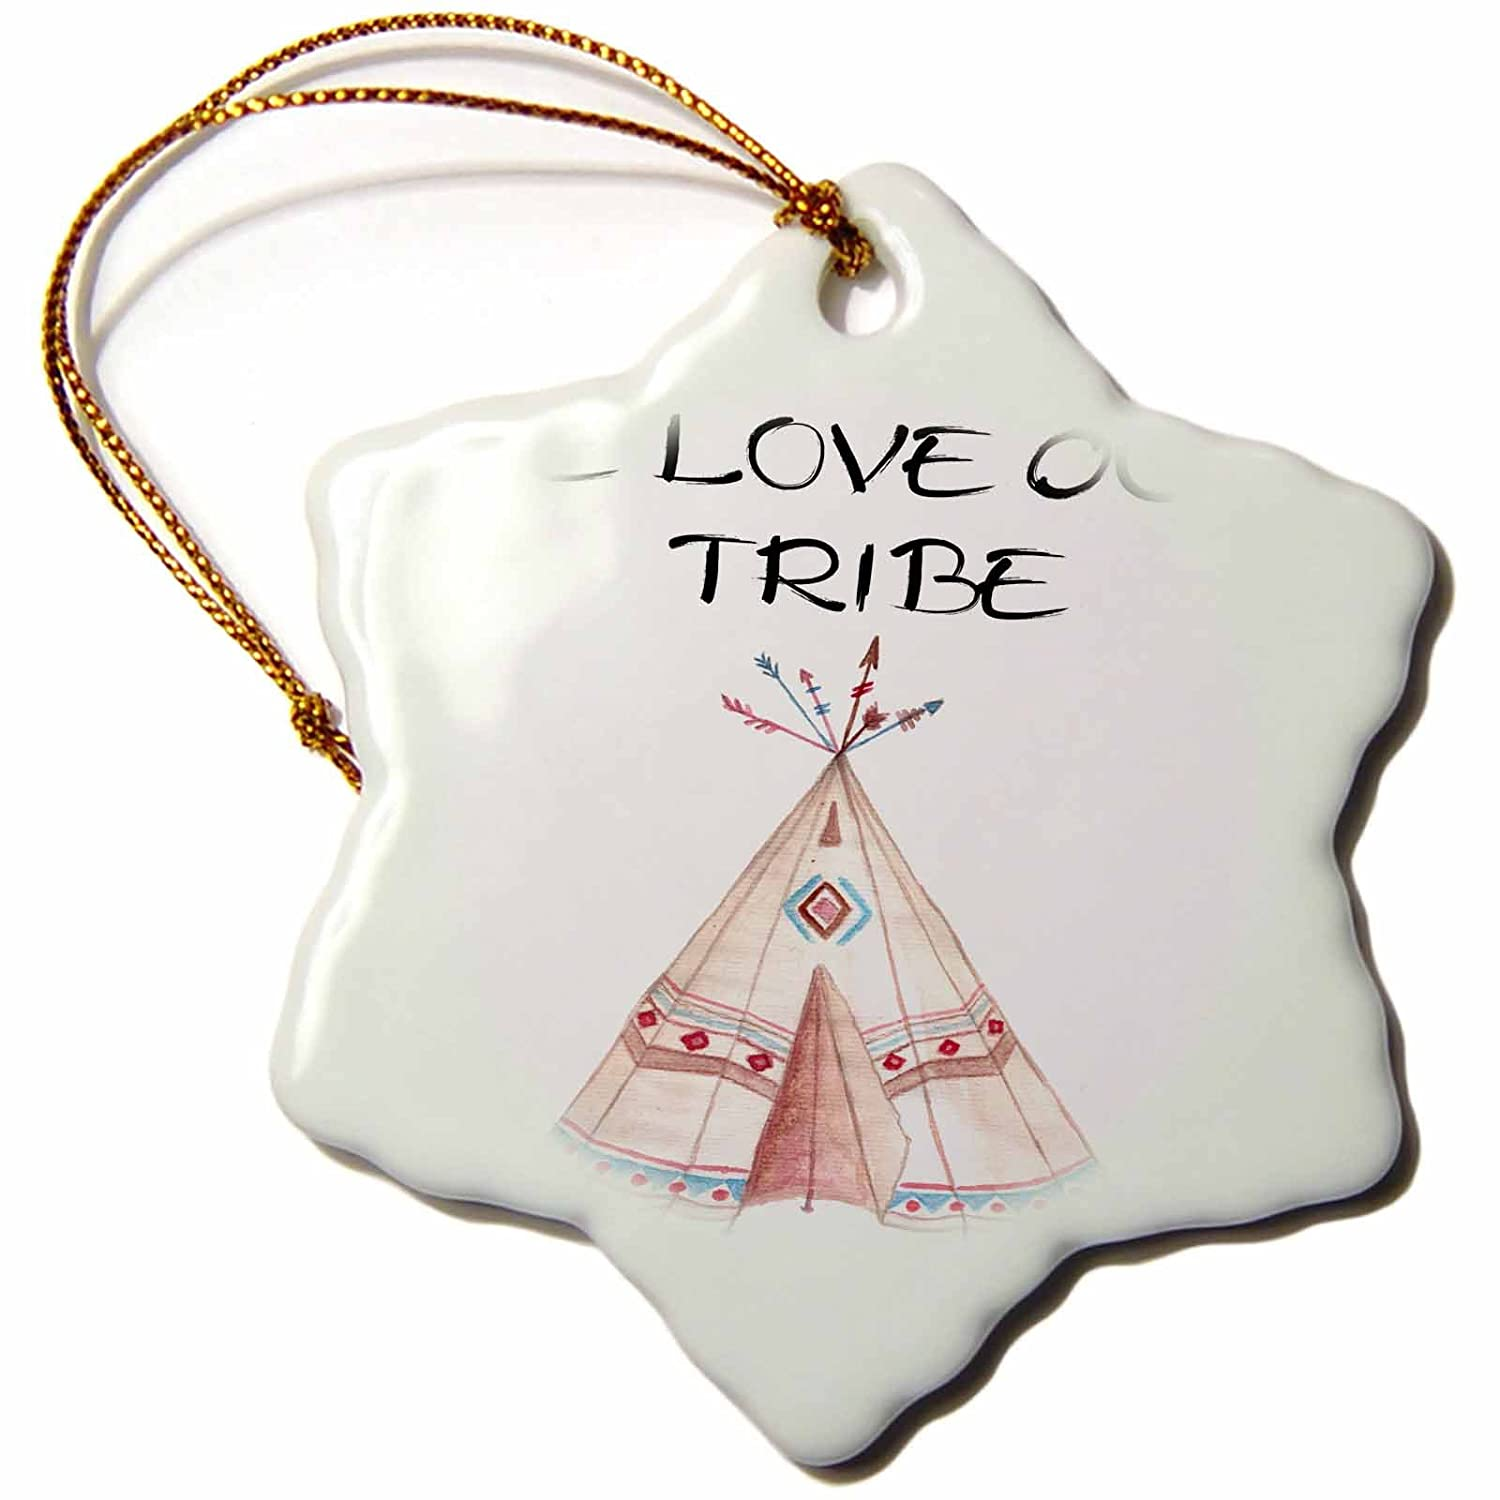 ORN/_254970/_1 Quotes We Love Our Tribe with A Teepee Illustration 3 inch Snowflake Porcelain Ornament 3dRose Anne Marie Baugh